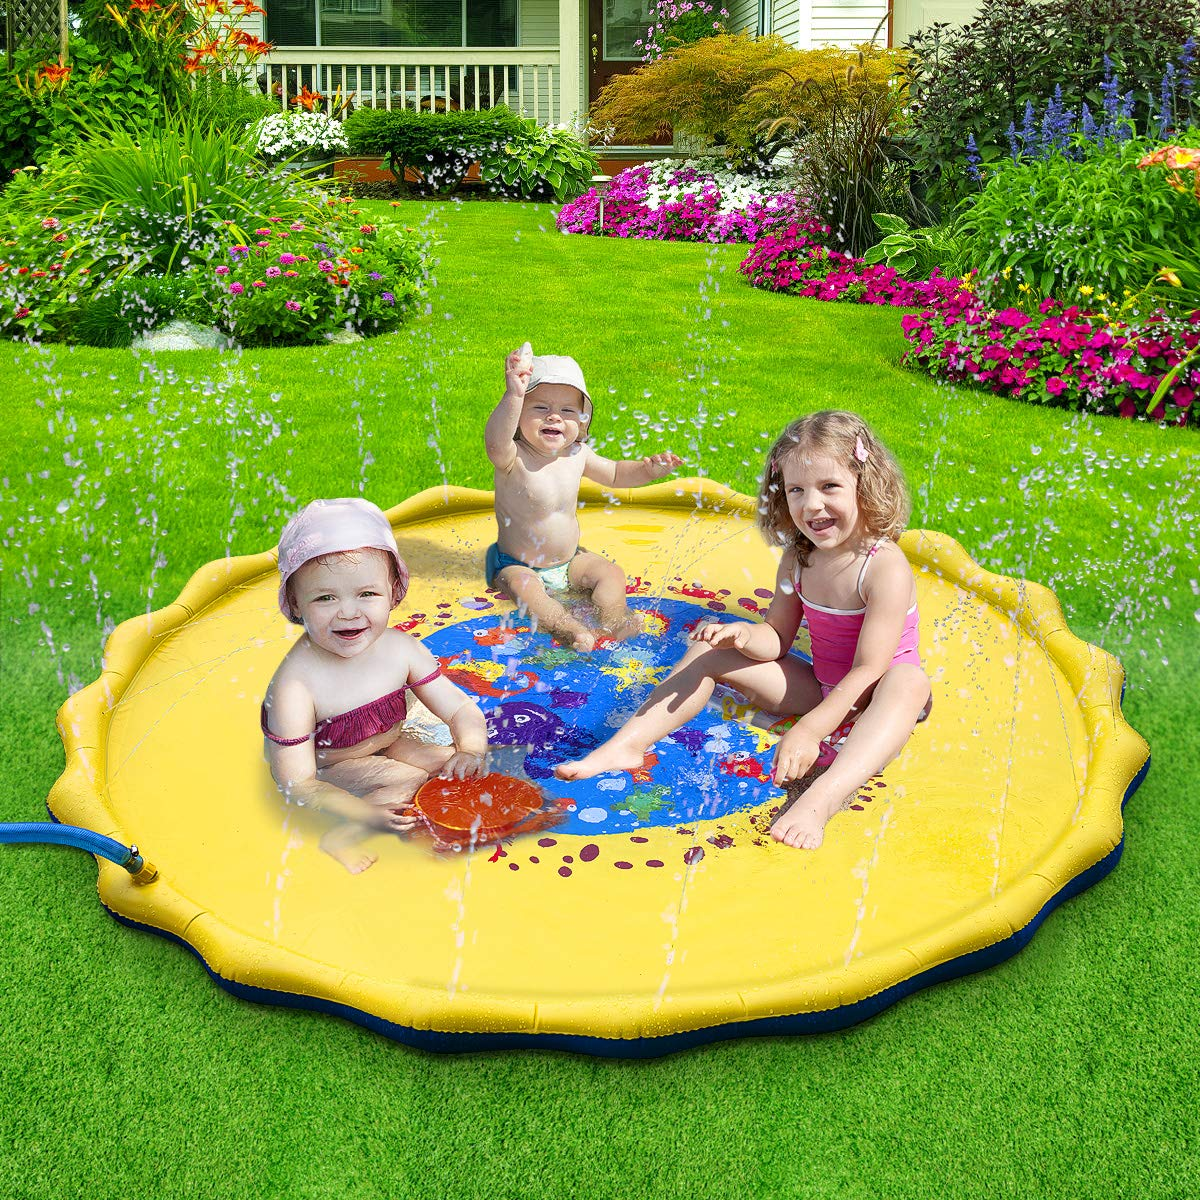 Splash Play Mat, 68in-Diameter Perfect Inflatable Outdoor Sprinkler Pad Summer Fun Backyard Play for Infants Toddlers and Kids by DAPRIL (Image #1)